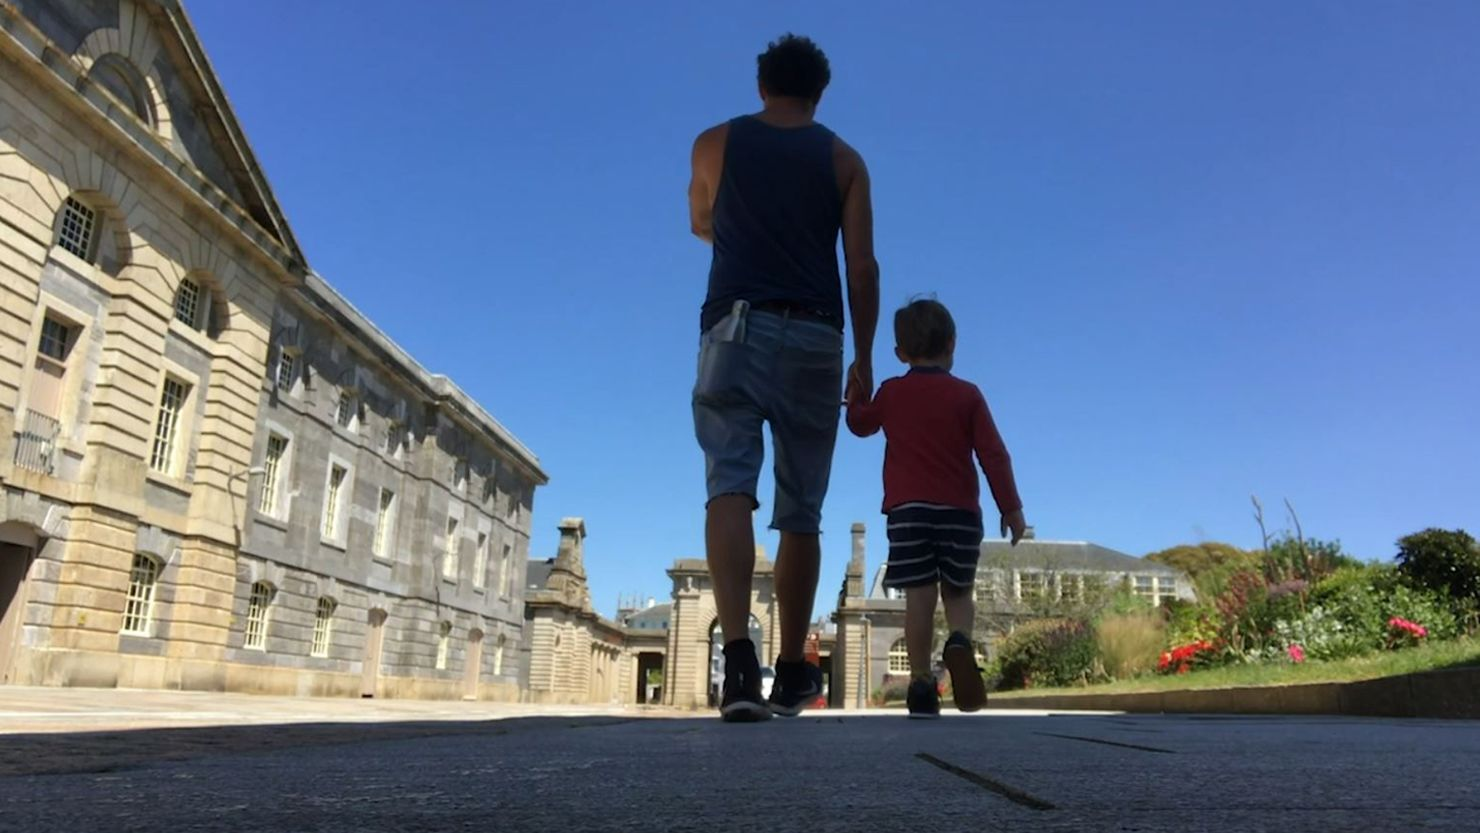 Andy Quick and his son walking through the Royal William Yard in Plymouth - June 2020